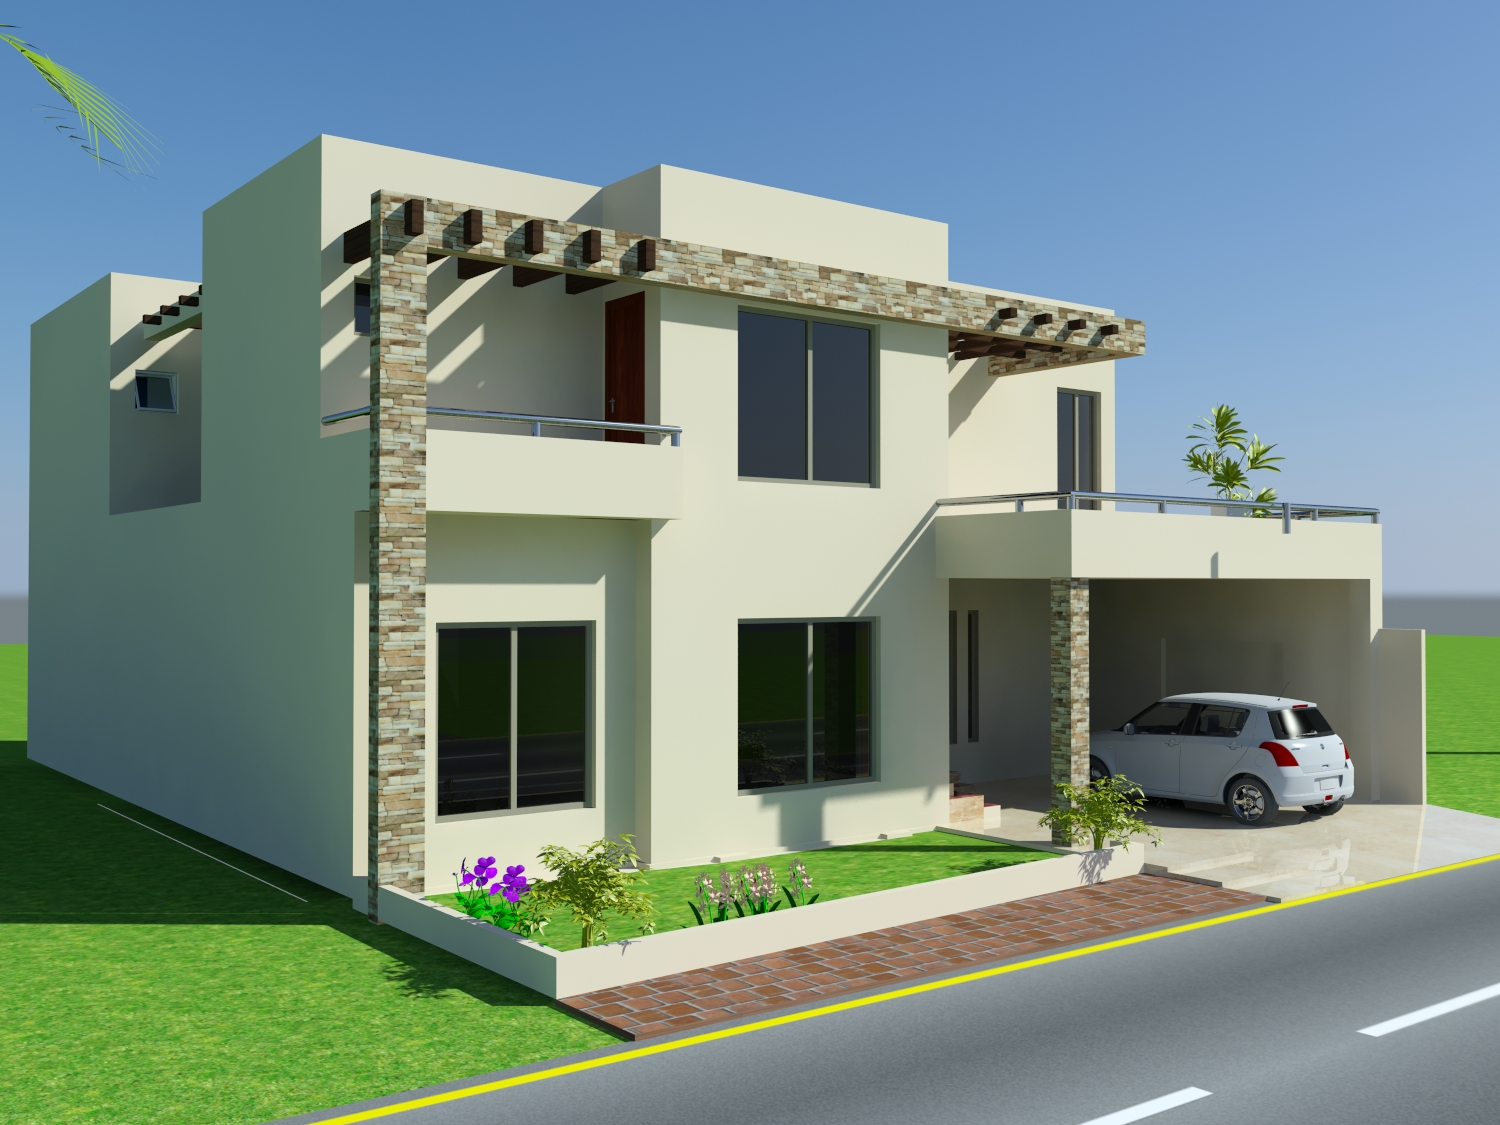 3d front 10 marla house design mian wali For10 Marla Home Designs In Pakistan